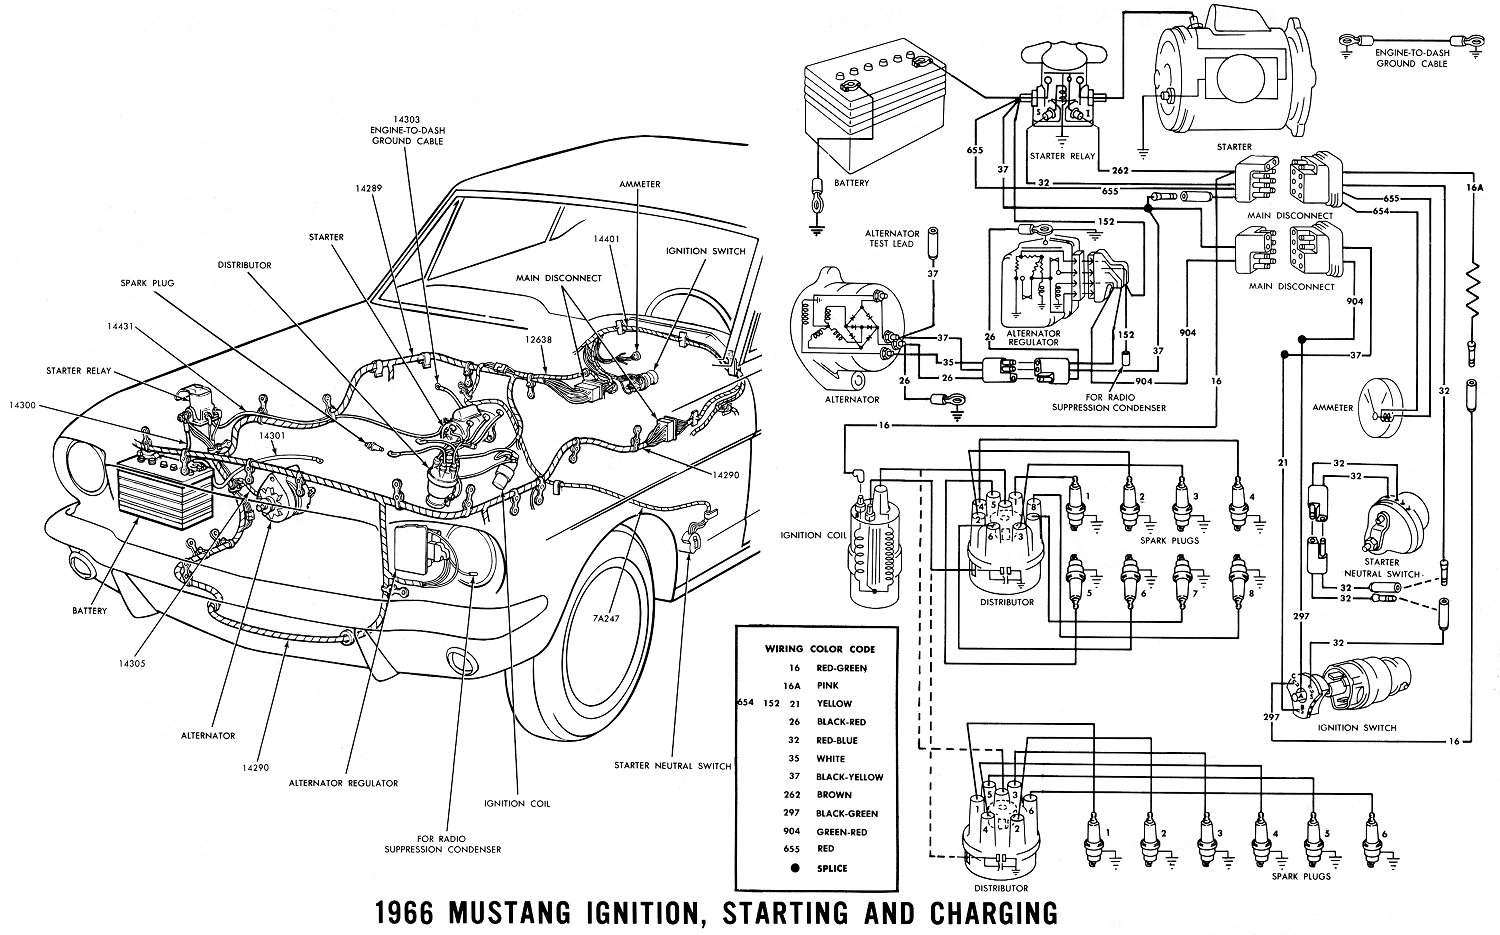 1966 Mustang Wiring Diagrams - Average Joe Restoration on vw bug wire harness, geo tracker wire harness, dodge neon wire harness, ford truck wiring harness, 1970 mustang wire harness, 1989 mustang wire harness, jeep cj7 wire harness, jeep tj wire harness, honda fit wire harness,